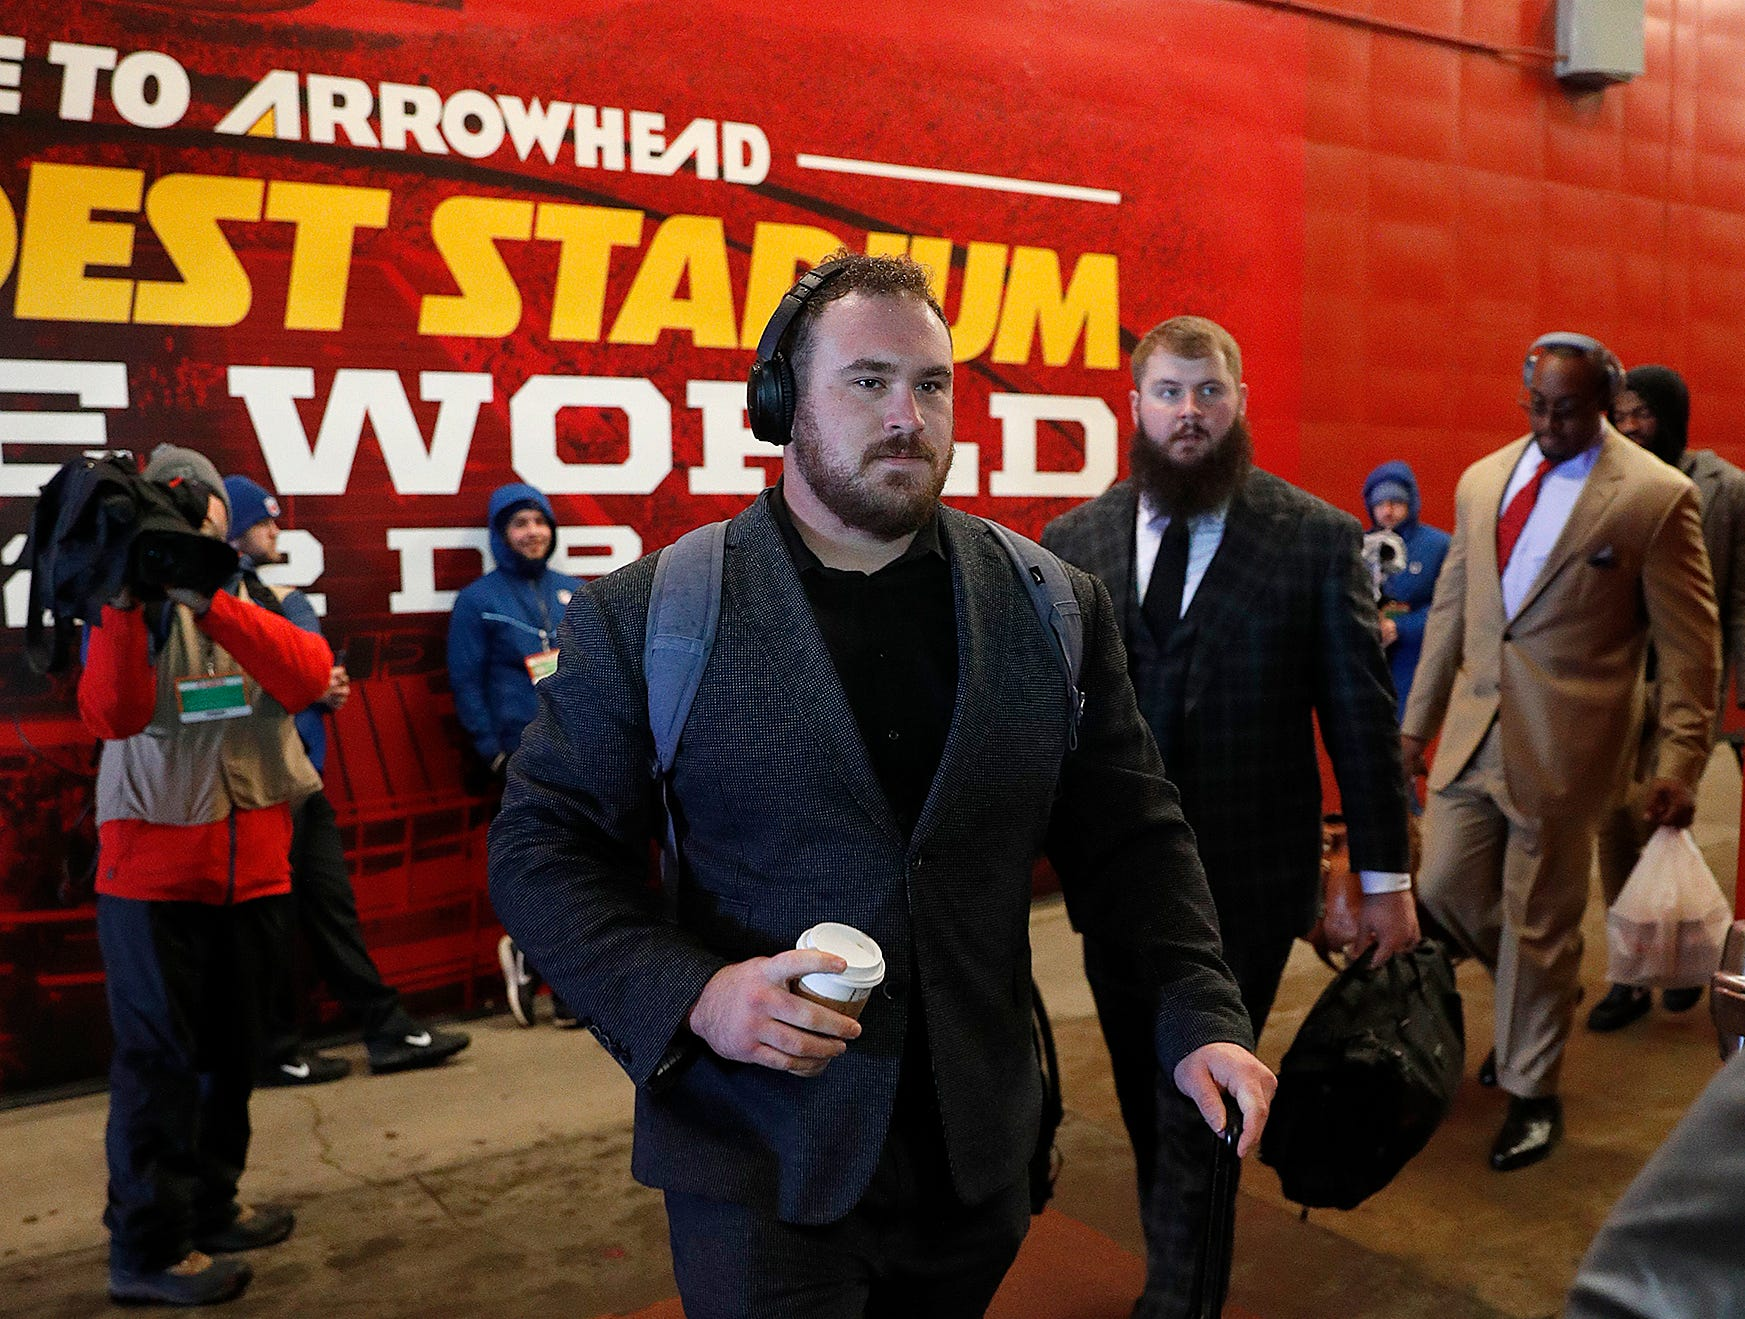 Indianapolis Colts offensive guard Evan Boehm (67) and the Indianapolis Colts arrive for their game against the Kansas City Chiefs at Arrowhead Stadium in Kansas City, MO., on Saturday, Jan. 12, 2019.